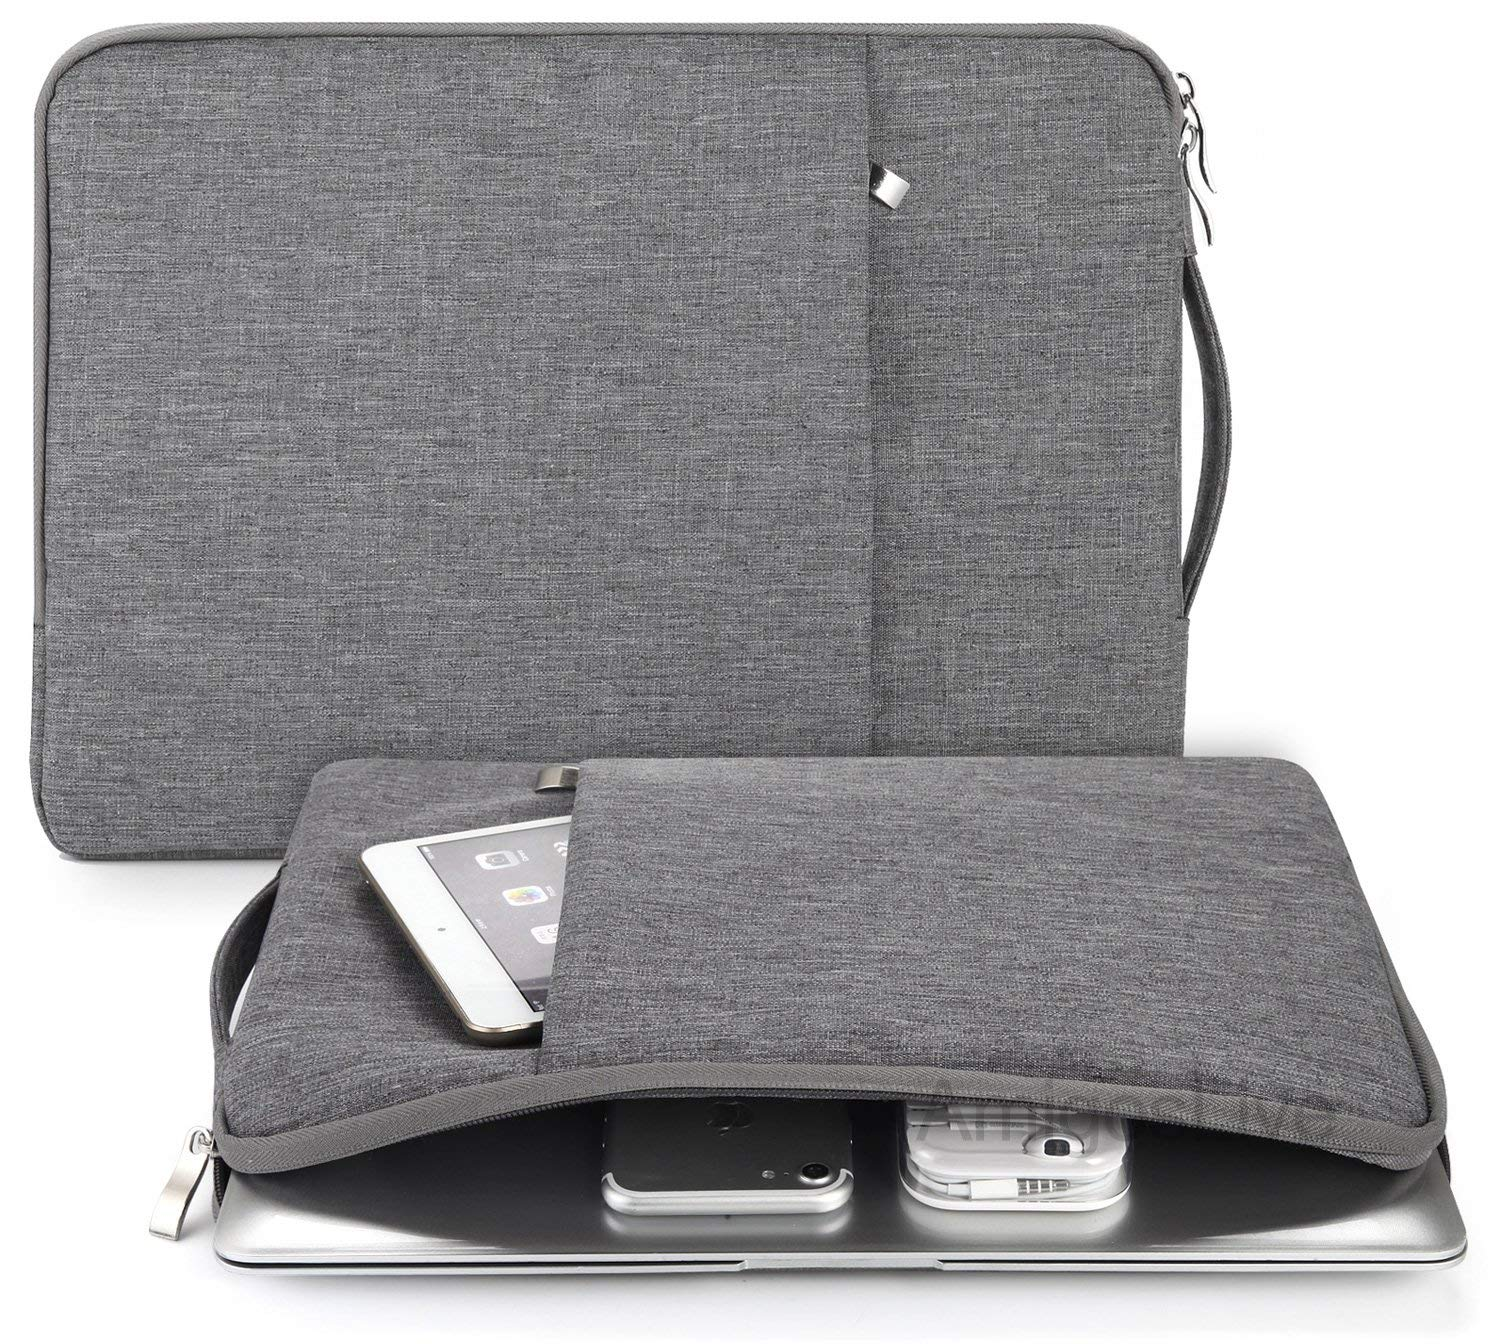 2019 New Brand Greliana Sleeve <font><b>Case</b></font> For <font><b>Laptop</b></font> 11